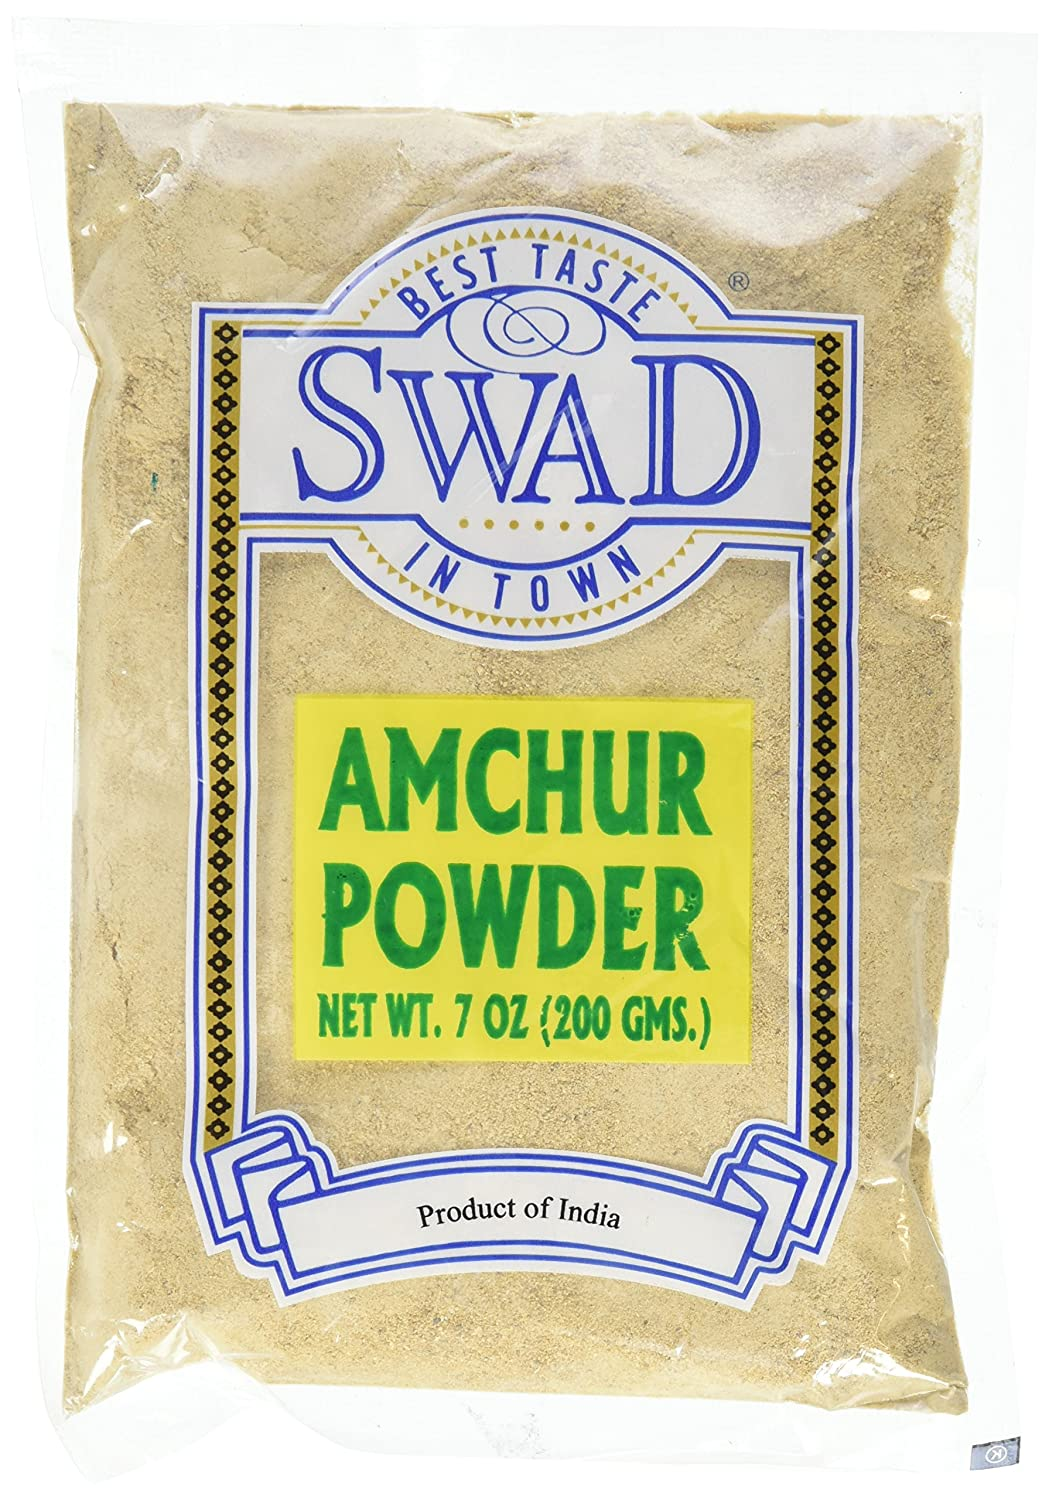 Swad amchur powder- 7oz